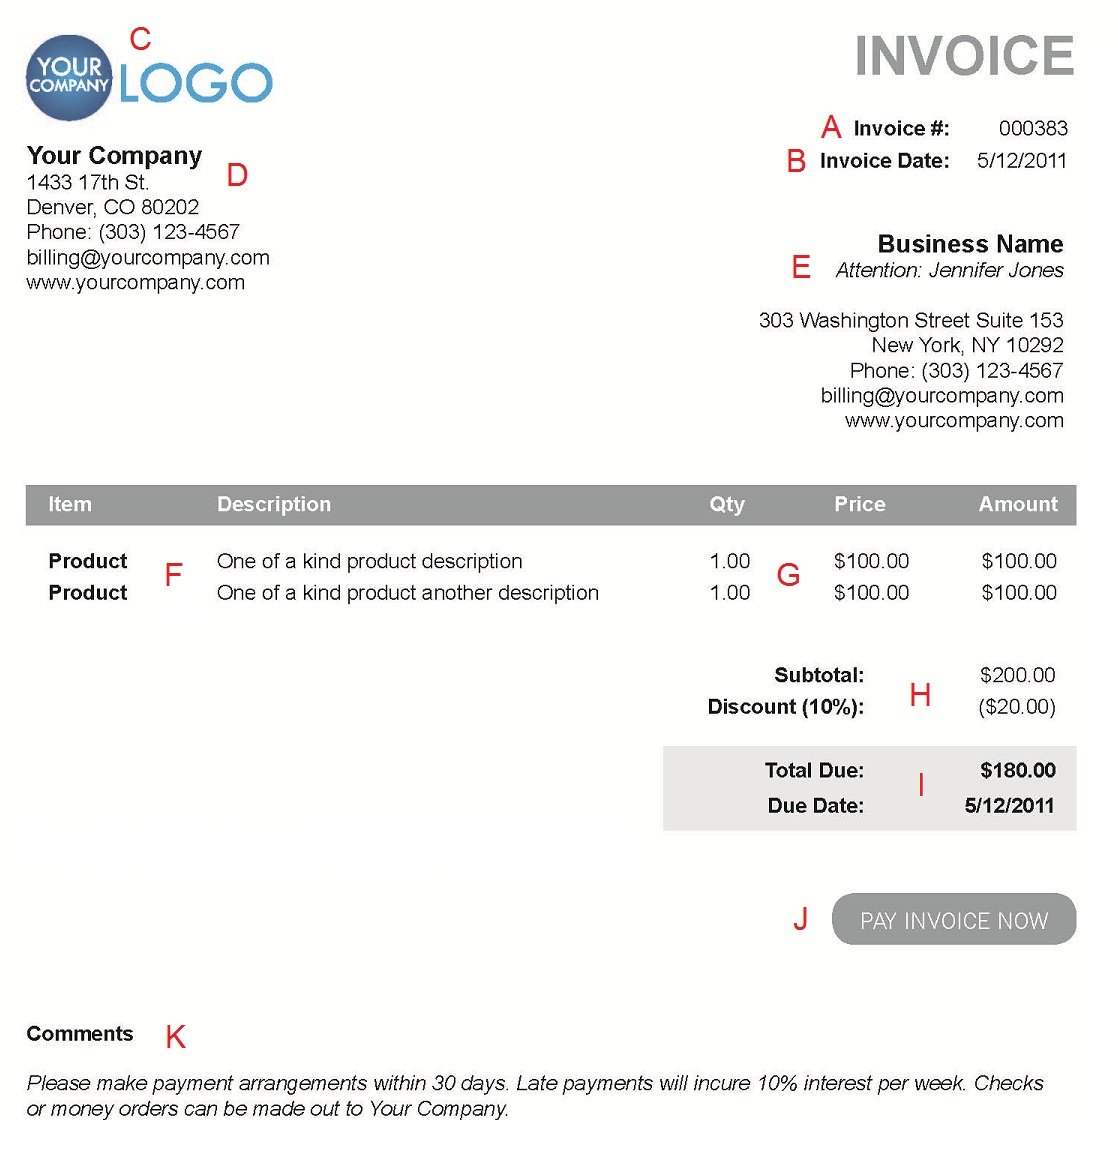 Amatospizzaus  Winning The  Different Sections Of An Electronic Payment Invoice With Great A  With Extraordinary Invoiced Meaning Also Invoice Order In Addition Invoice Pad And Motorcycle Invoice Price As Well As Aynax Free Invoice Additionally Dealership Invoice Price From Paysimplecom With Amatospizzaus  Great The  Different Sections Of An Electronic Payment Invoice With Extraordinary A  And Winning Invoiced Meaning Also Invoice Order In Addition Invoice Pad From Paysimplecom